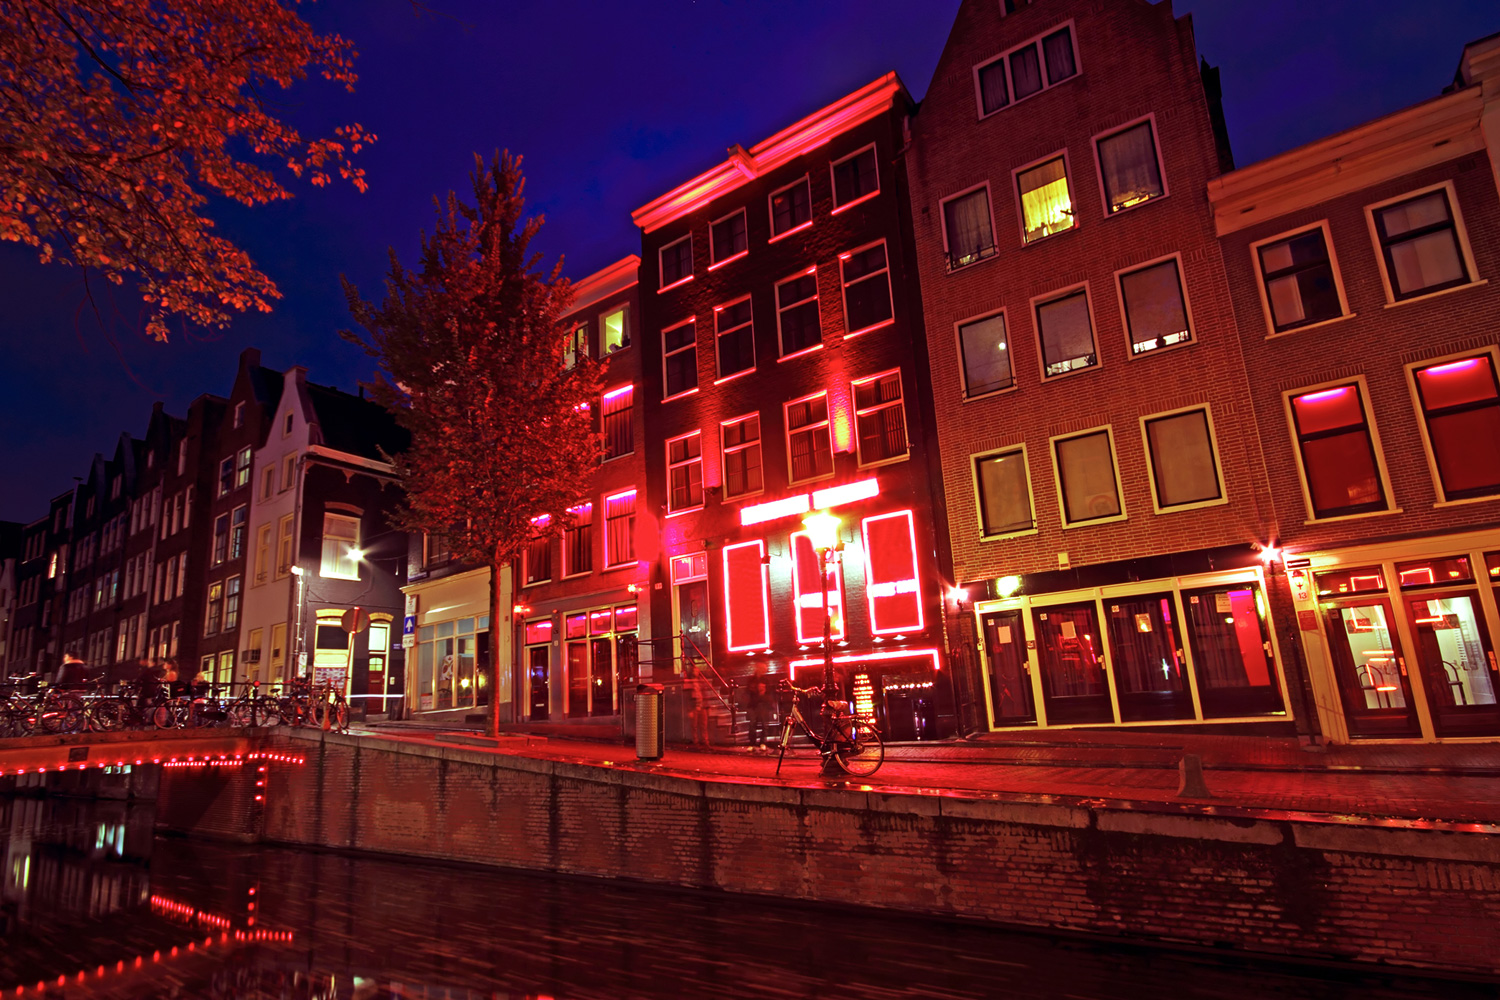 Red Light District in Amsterdam, The Netherlands